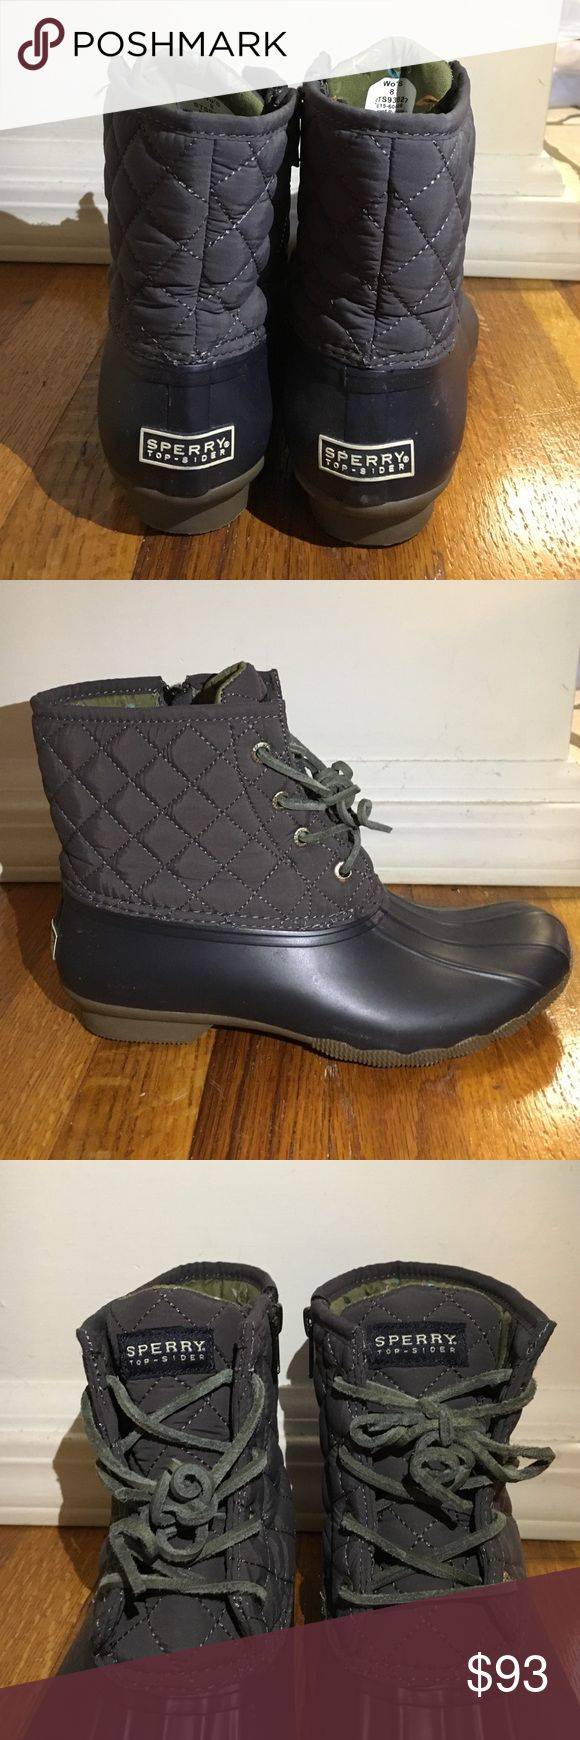 Women's Sperry Duck Boots Women's Sperry Duck Boots: Size 8, Navy blue, excellent condition. Perfect for rainy/snowy days! Sperry Top-Sider Shoes Winter & Rain Boots